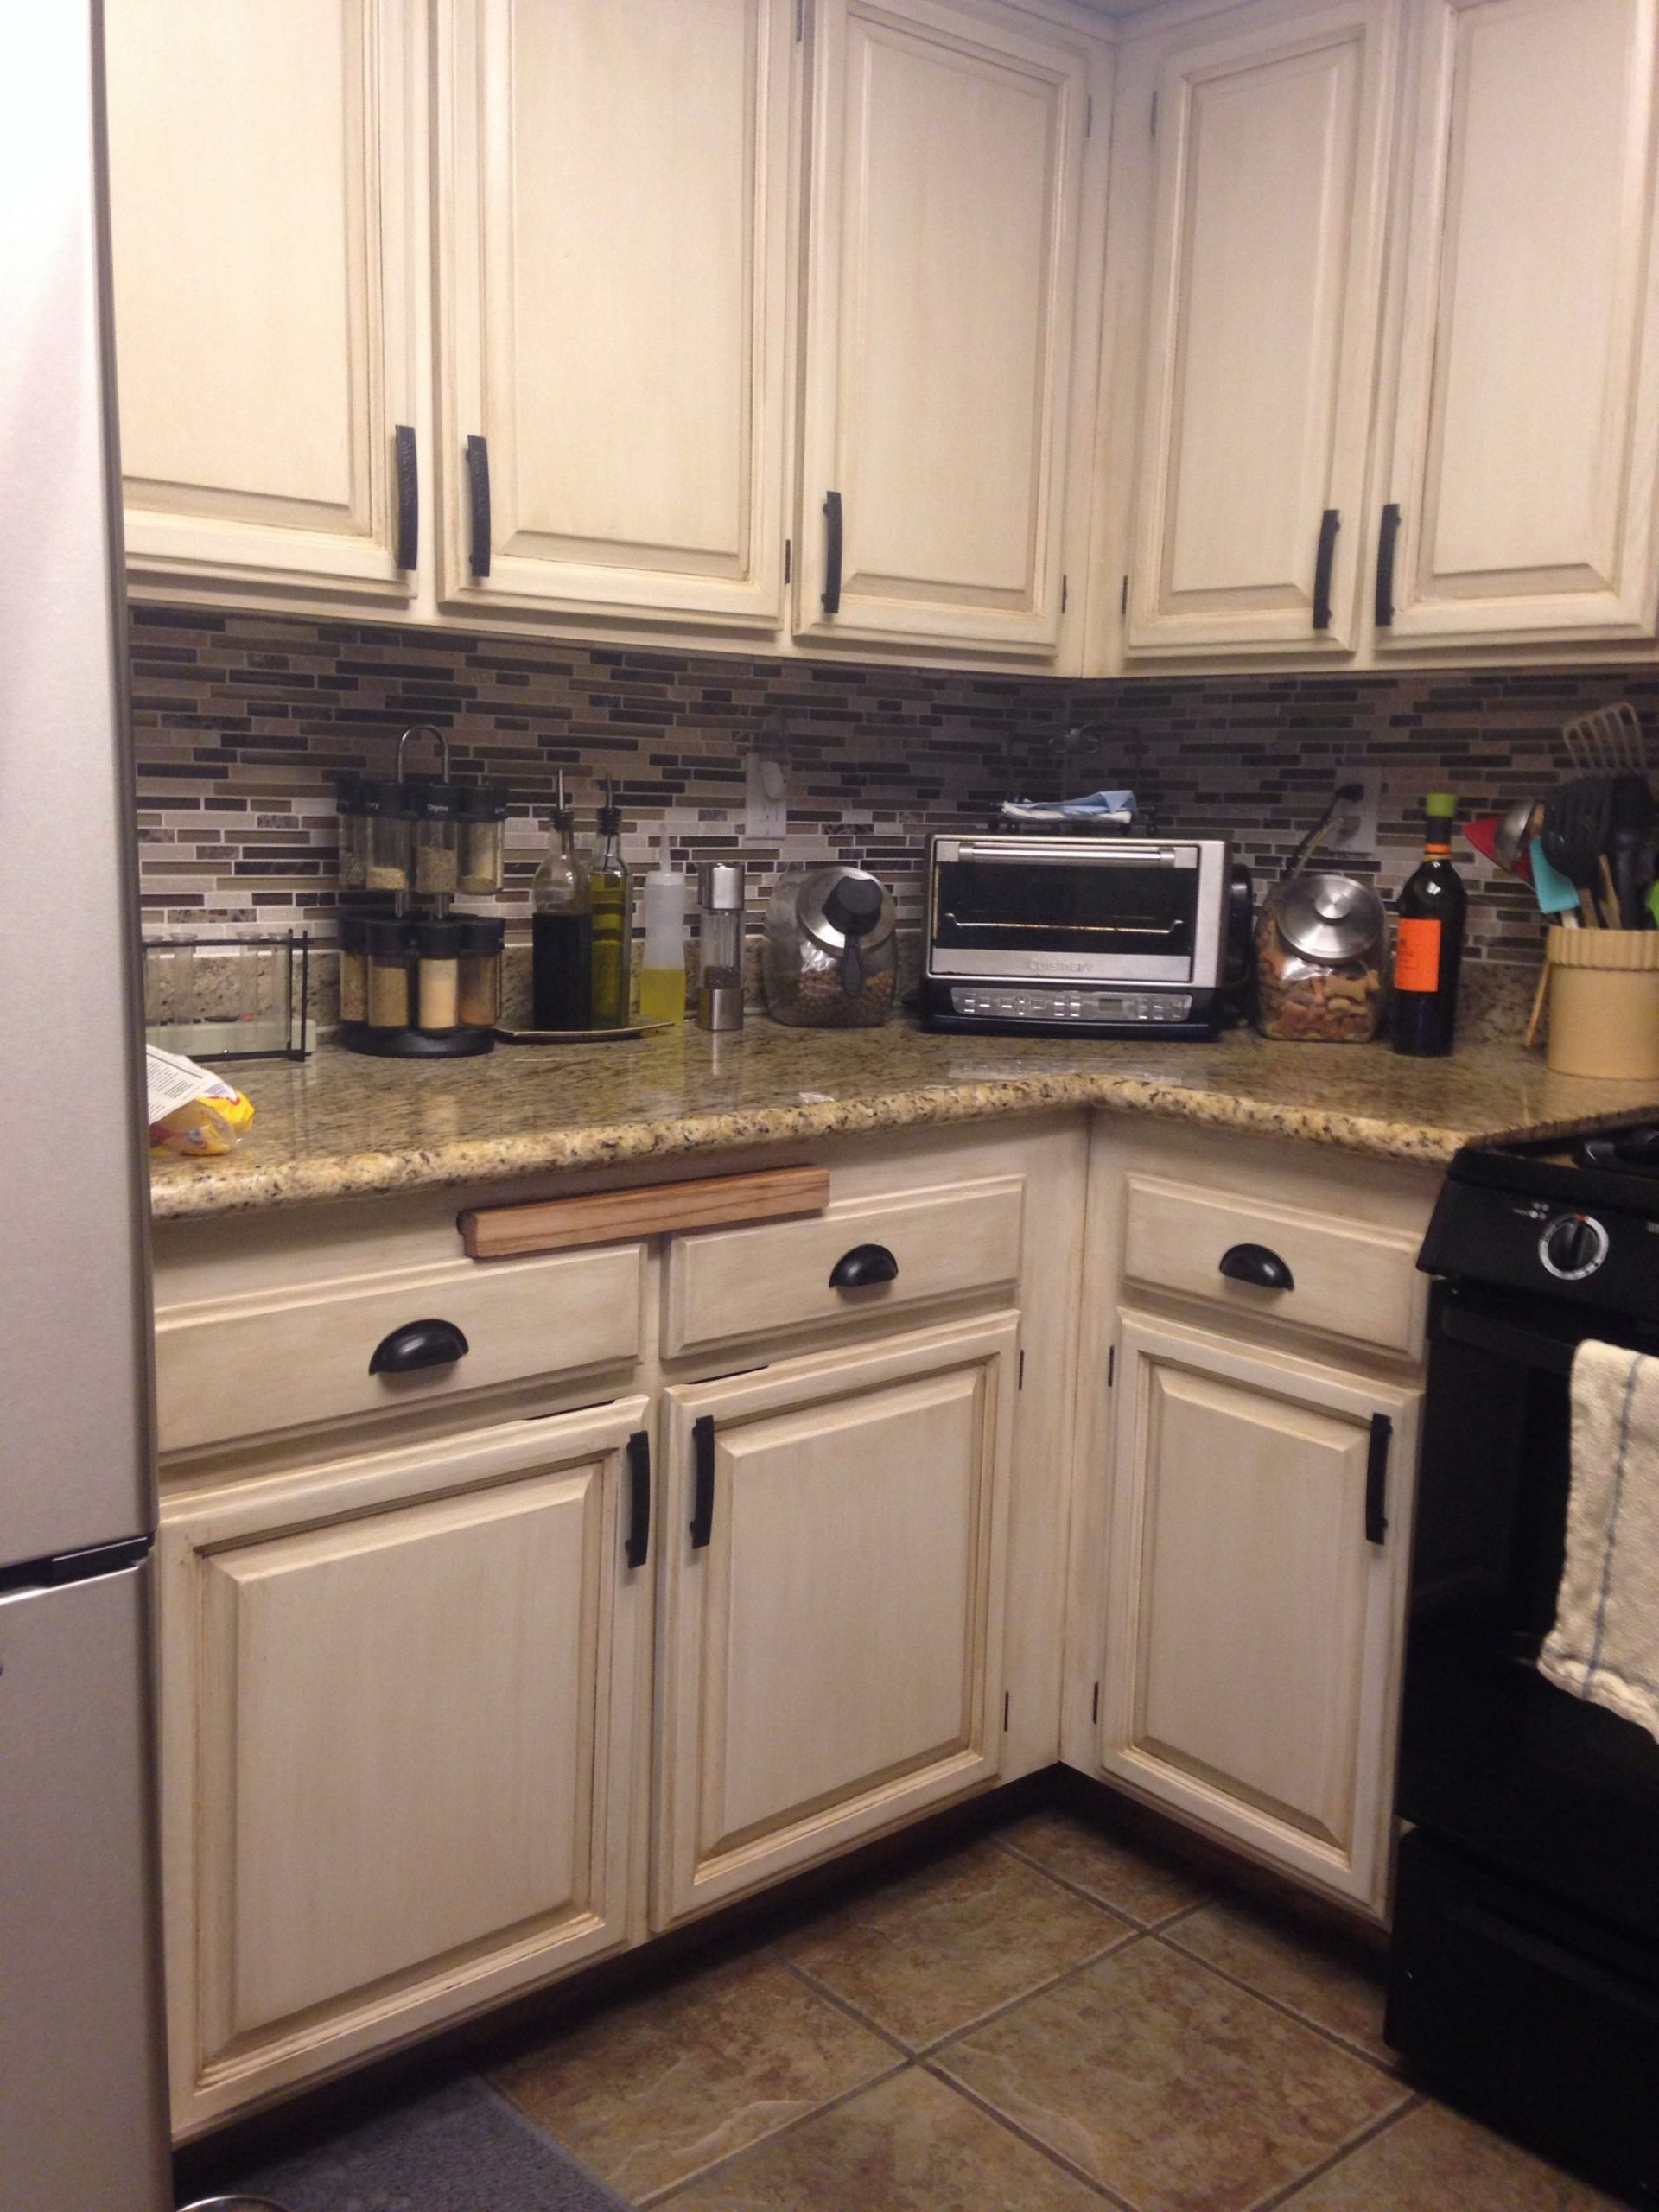 Tami review of painted cabinets using Rustoleum Transformations  - Rustoleum Kitchen Cabinet Paint Kit Reviews